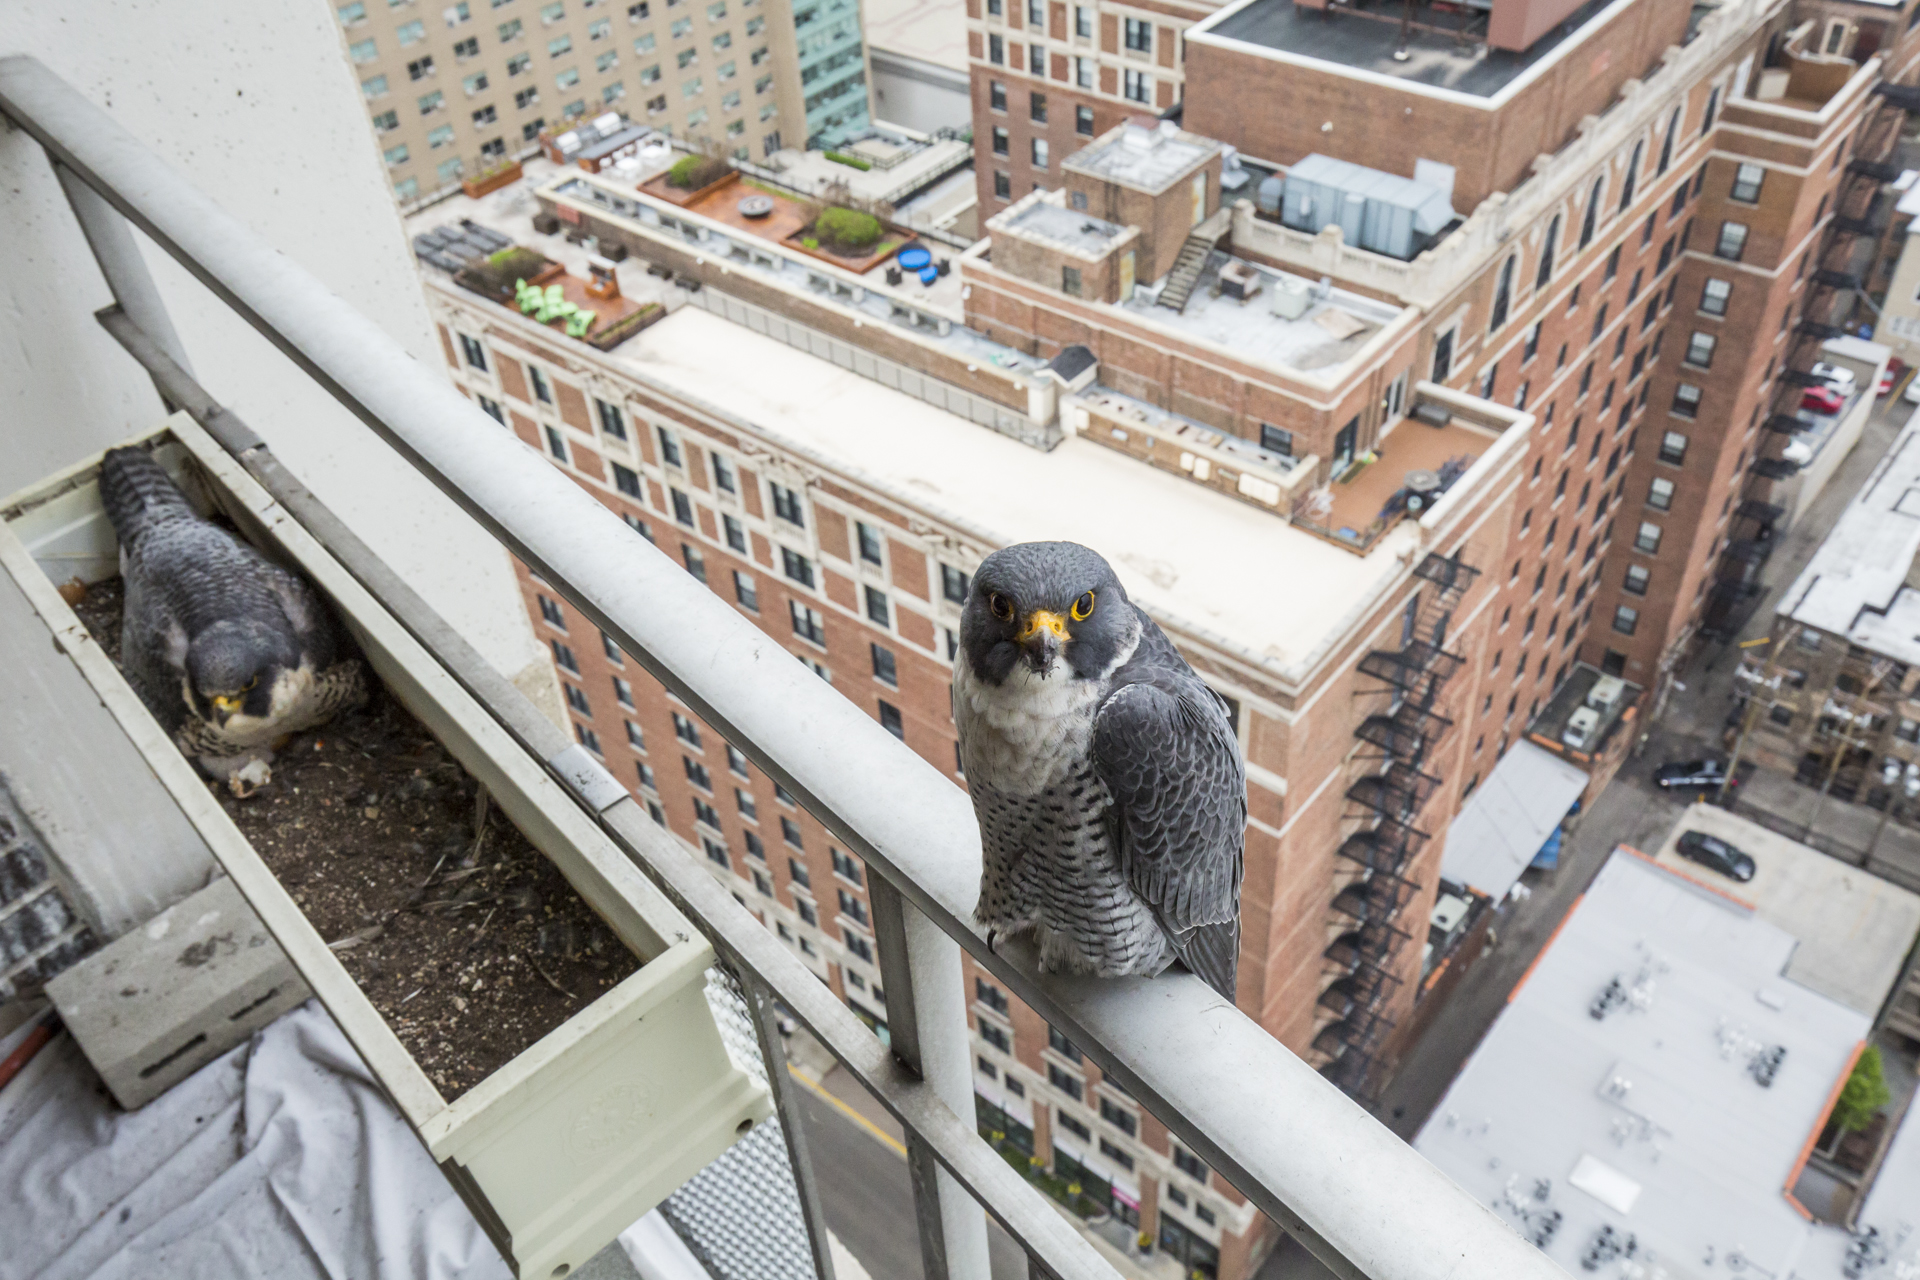 Whilst Steve, the tiercel, wasn't out hunting he'd never be far from the nest site. Ready to defend it from intruders.